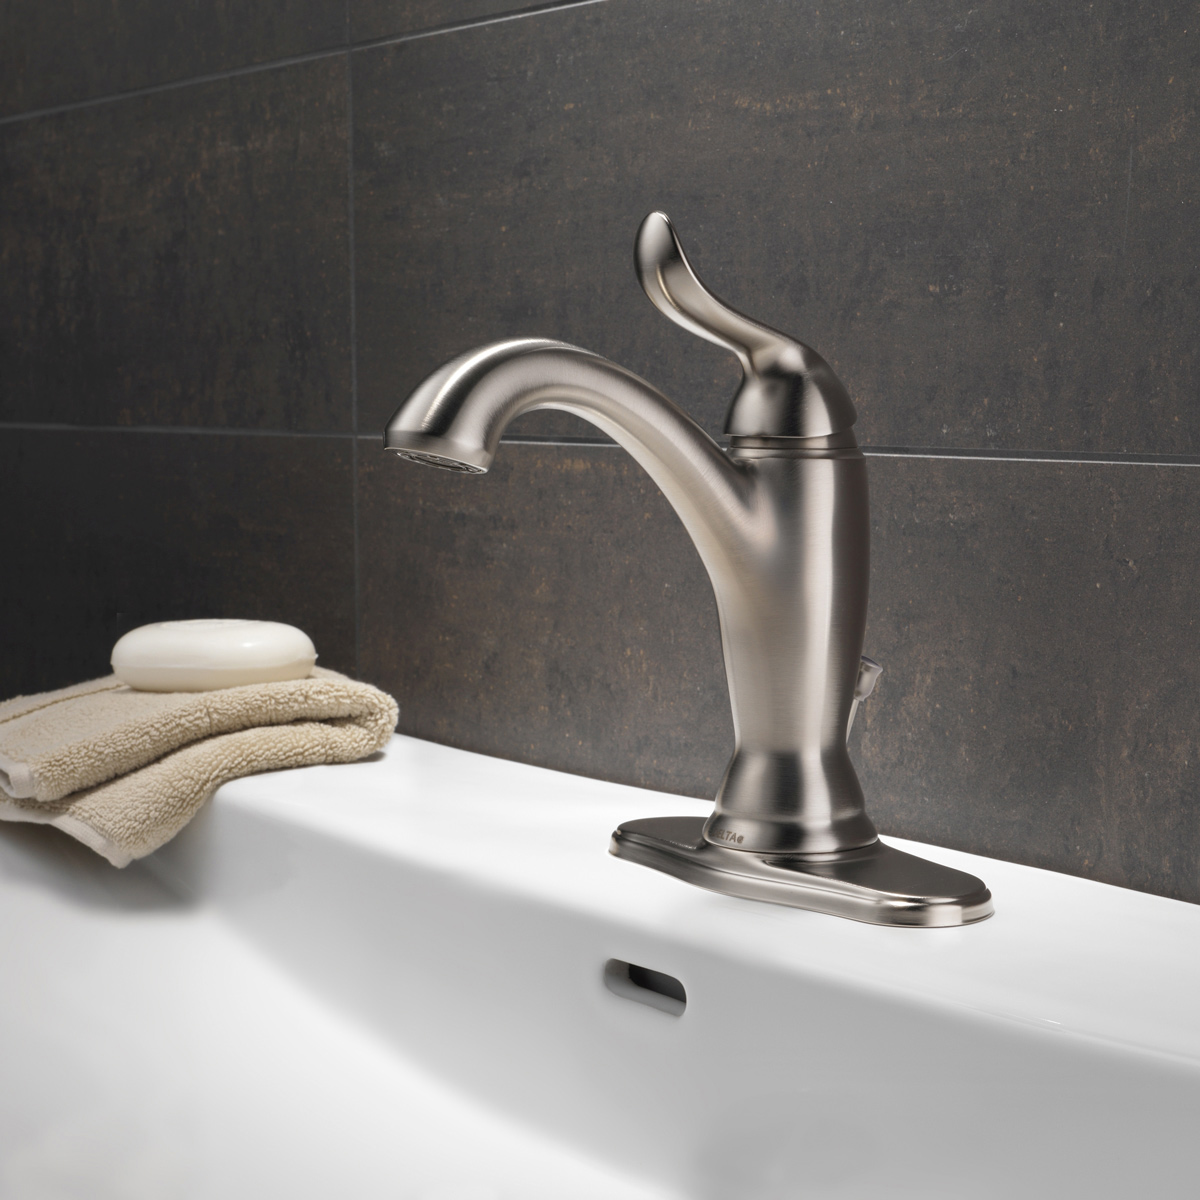 Delta linden single hole faucet